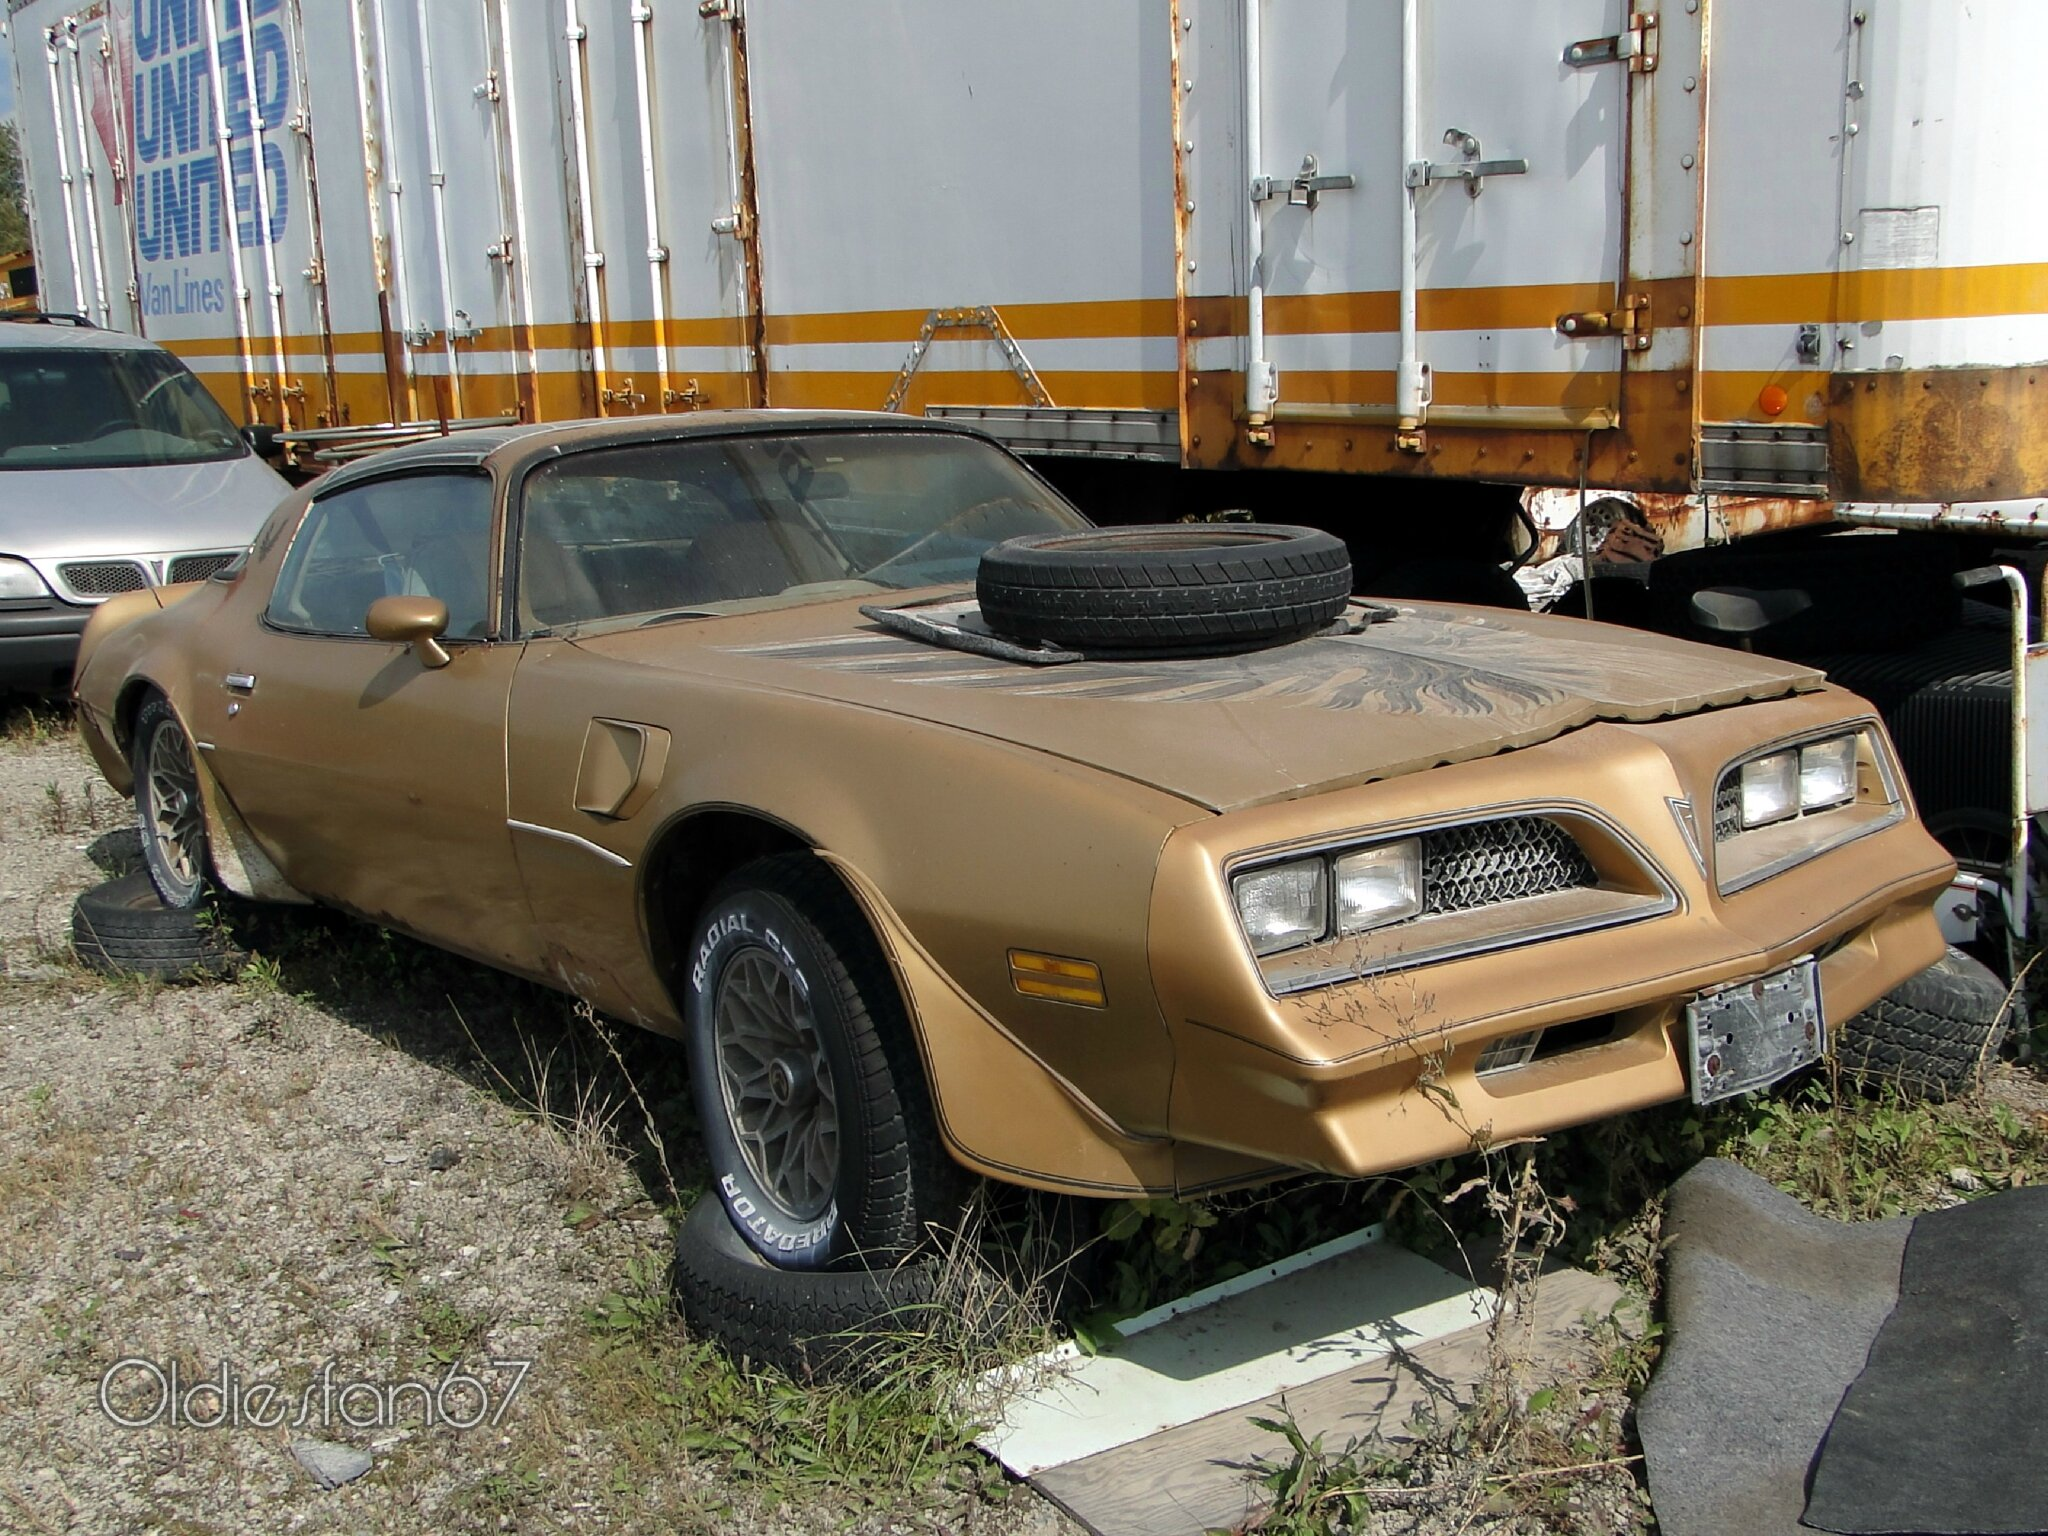 Pontiac Firebird Trans Am Coupe 1977 1978 Oldiesfan67